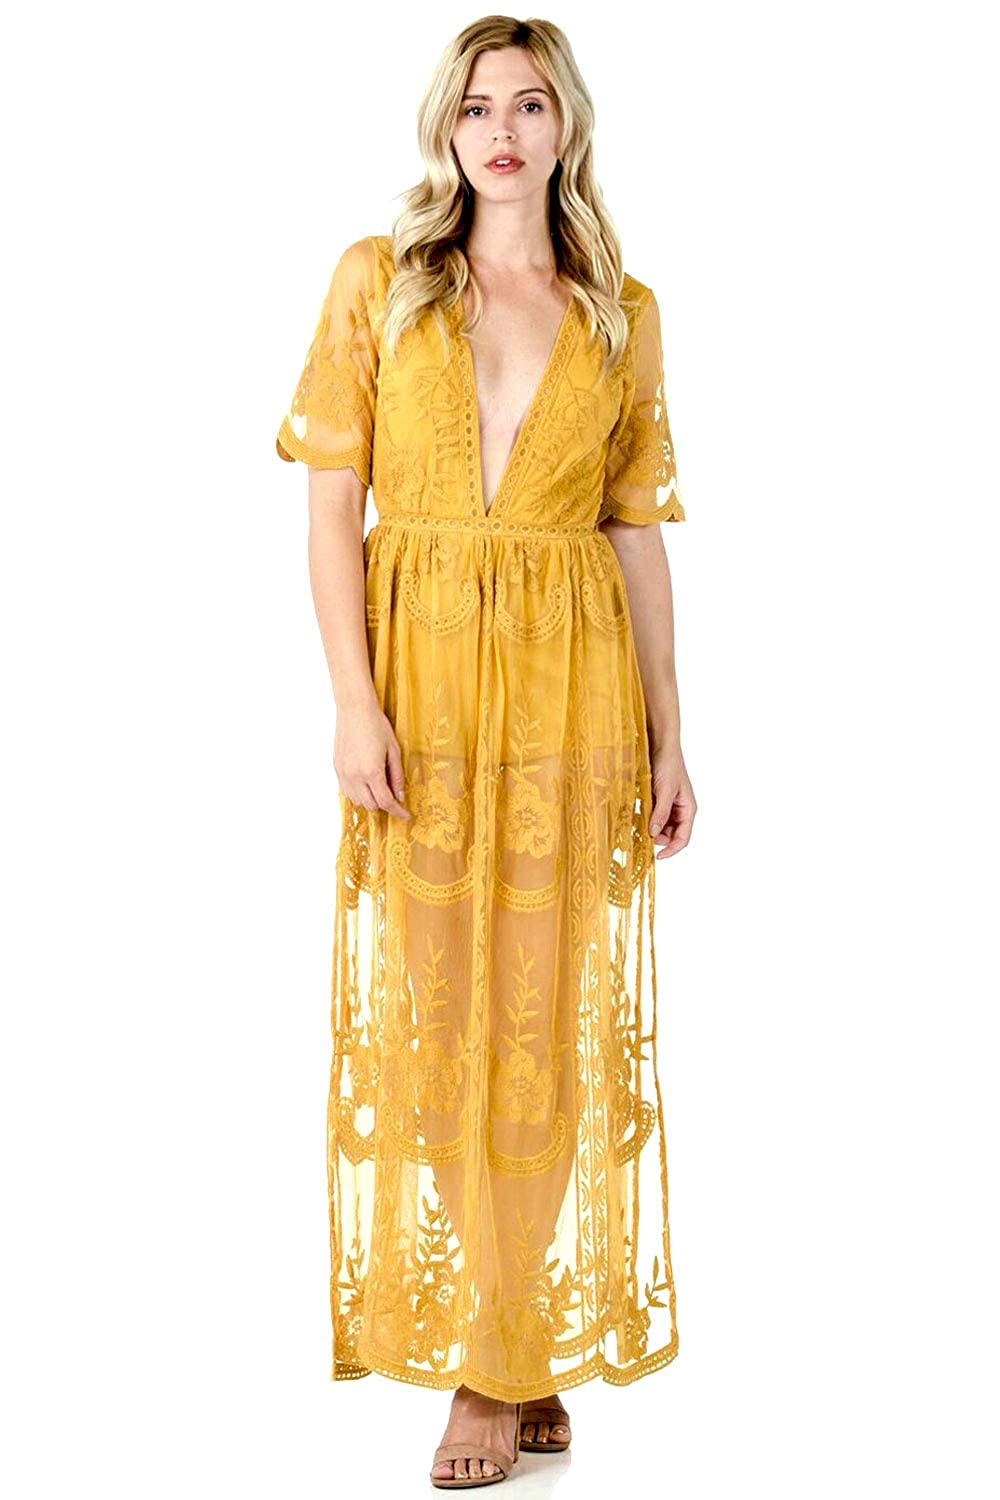 bd0110e9df4 Top 10 wholesale Mustard Yellow Dress - Chinabrands.com